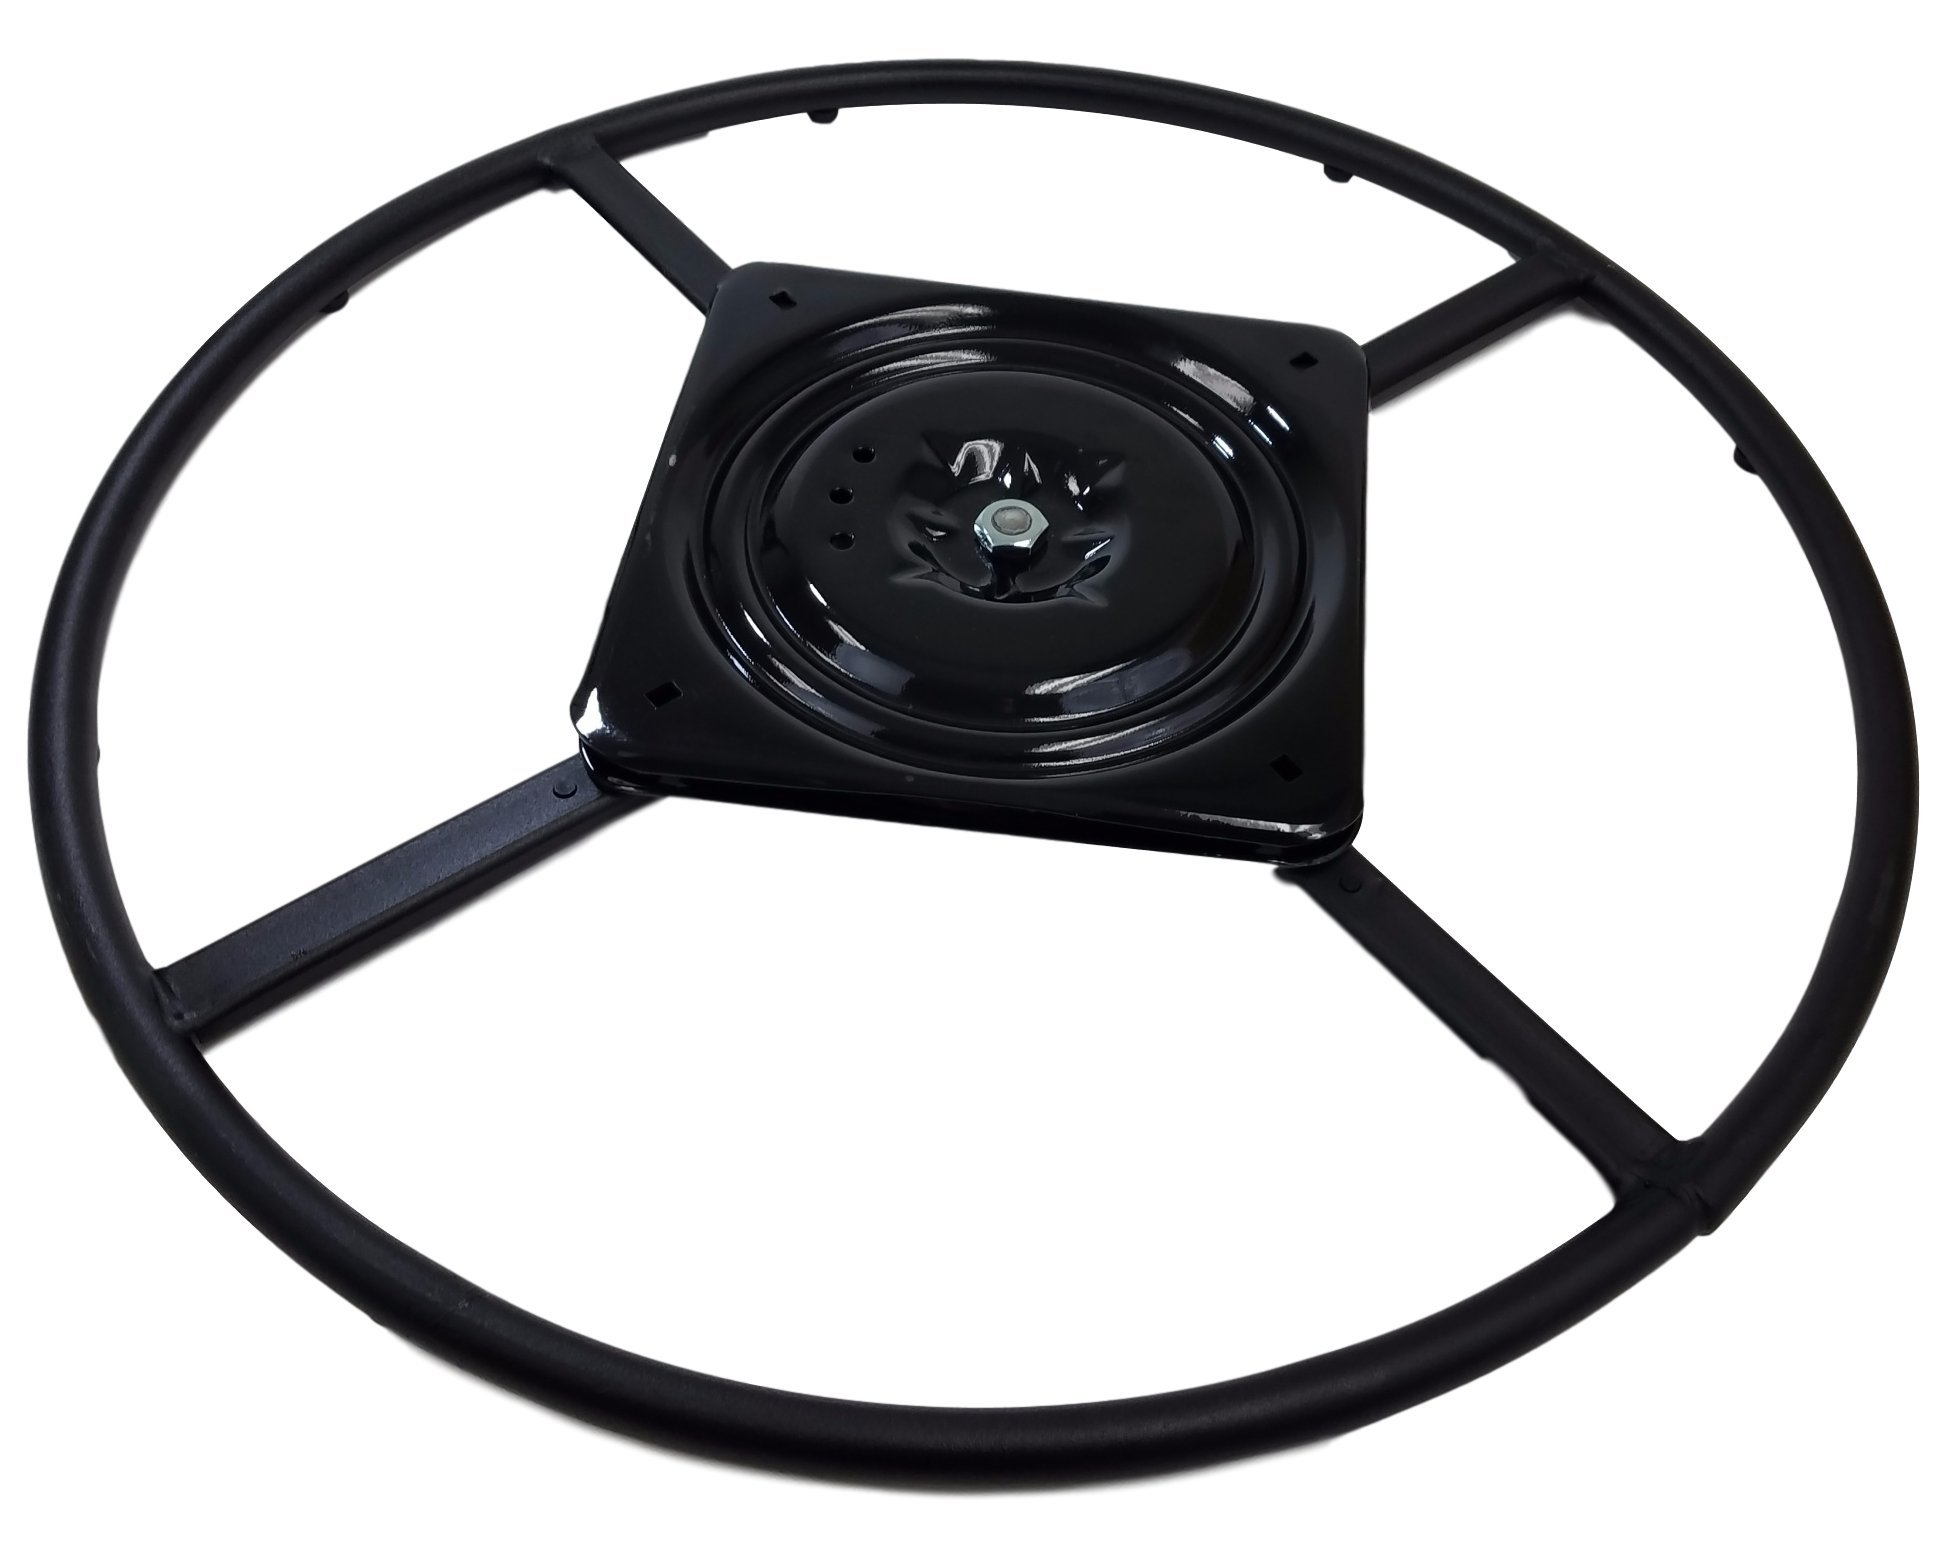 True Choice 24'' Replacement Swivel Ring Base For Recliner Chairs And Other Swivel Base Seating (24 inch)